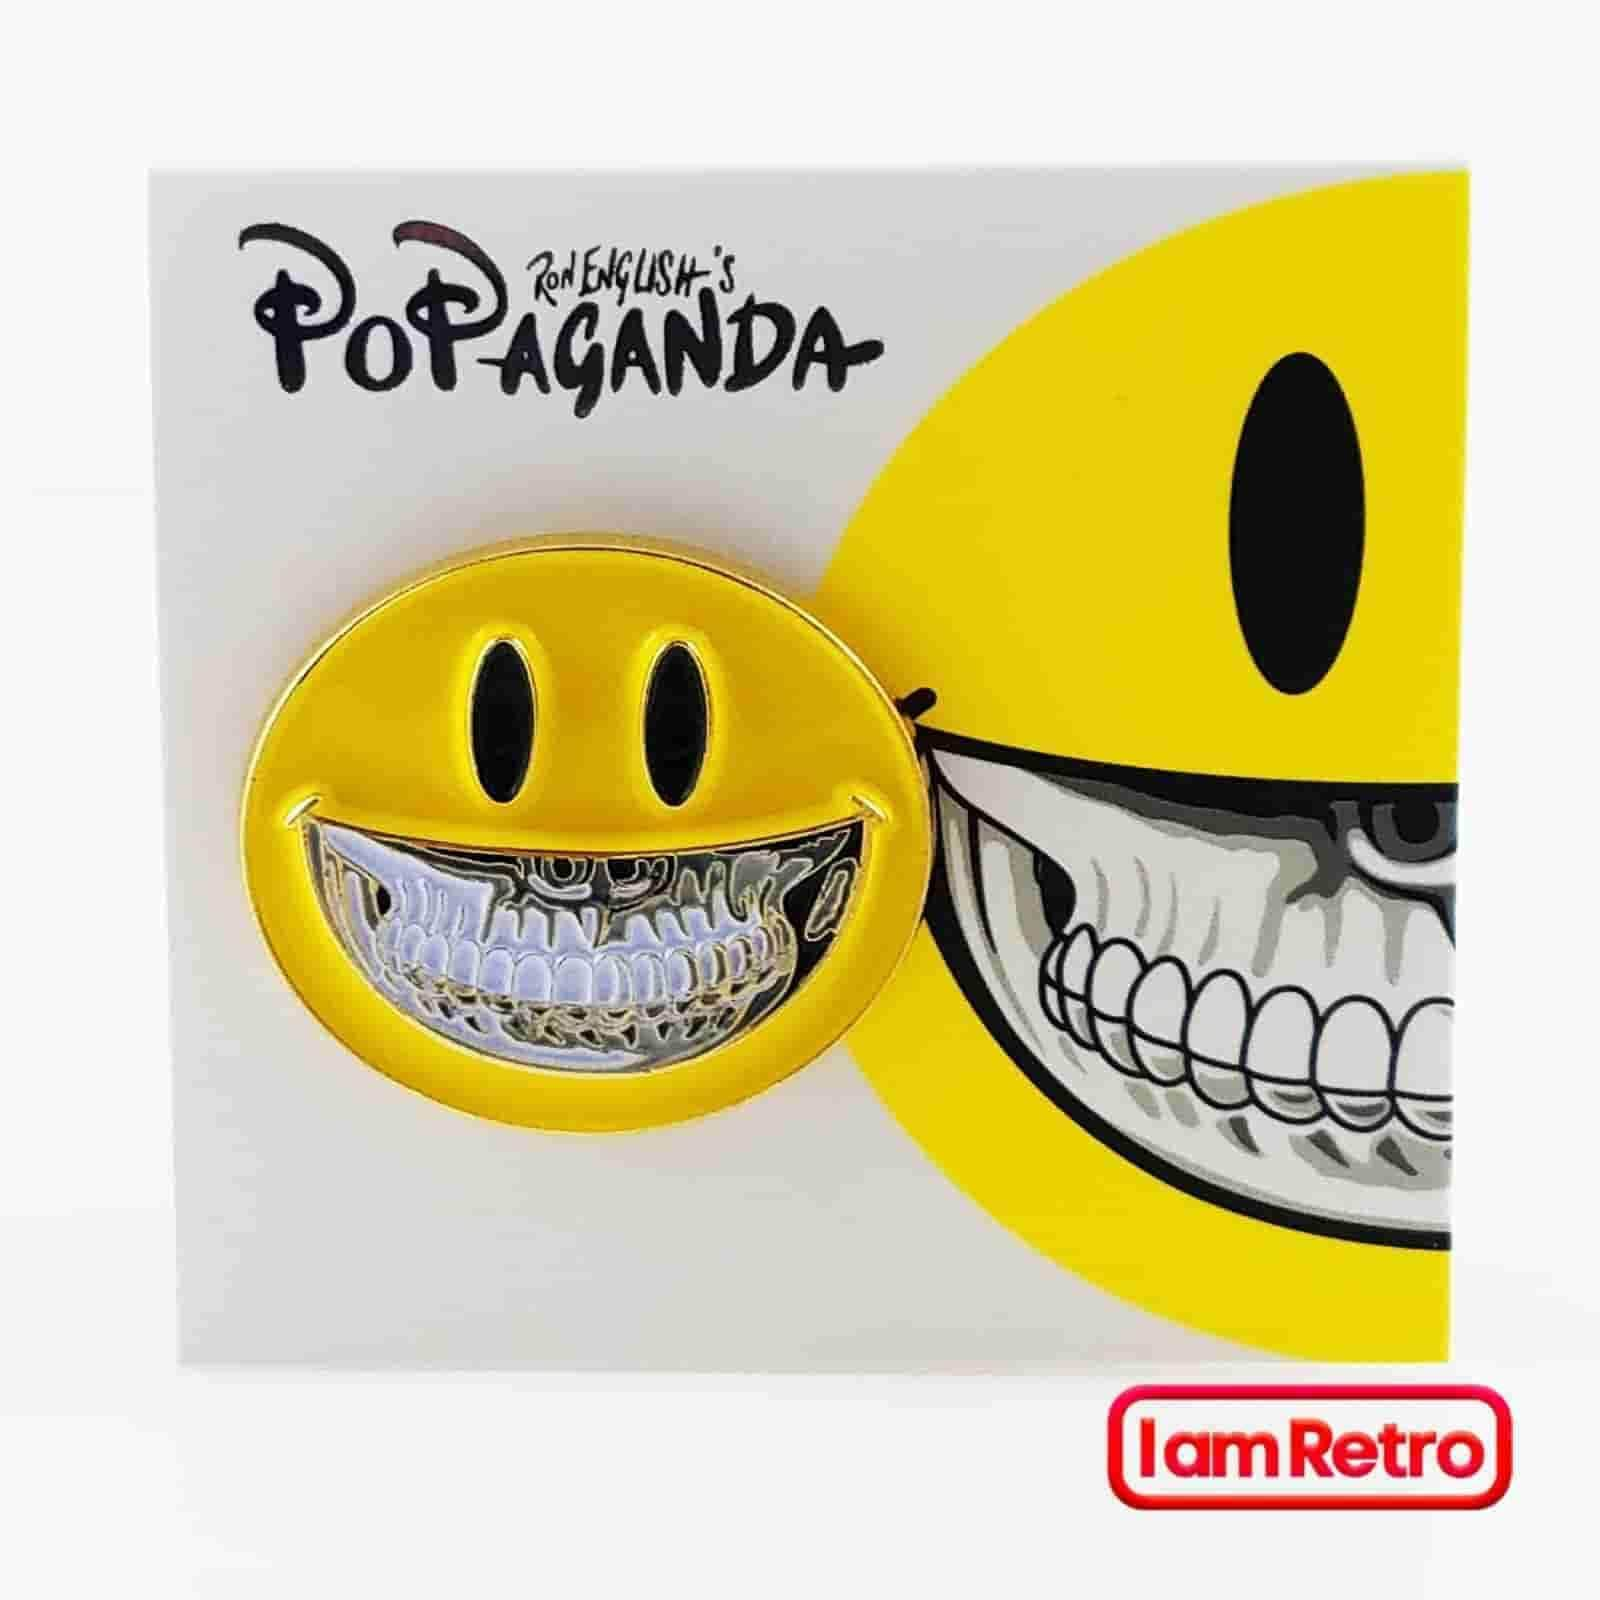 Mad Glad Grin Enamel Pin by Ron English Popaganda - iamRetro.com